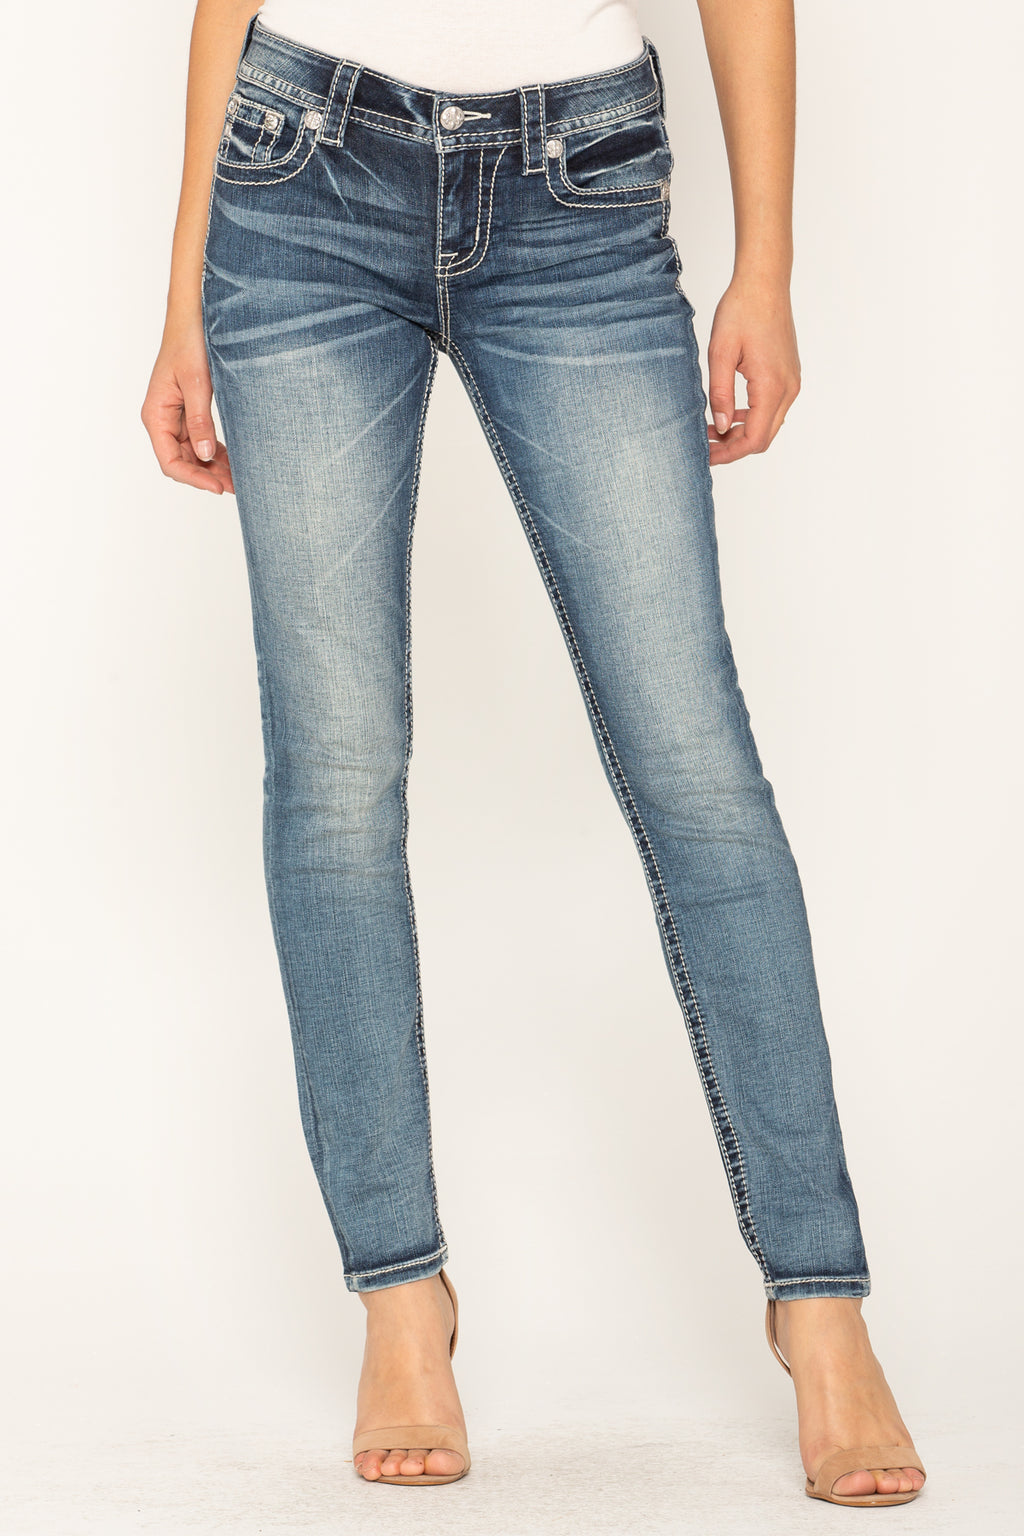 003a414e27a CROWN JEWEL SKINNY JEANS - front